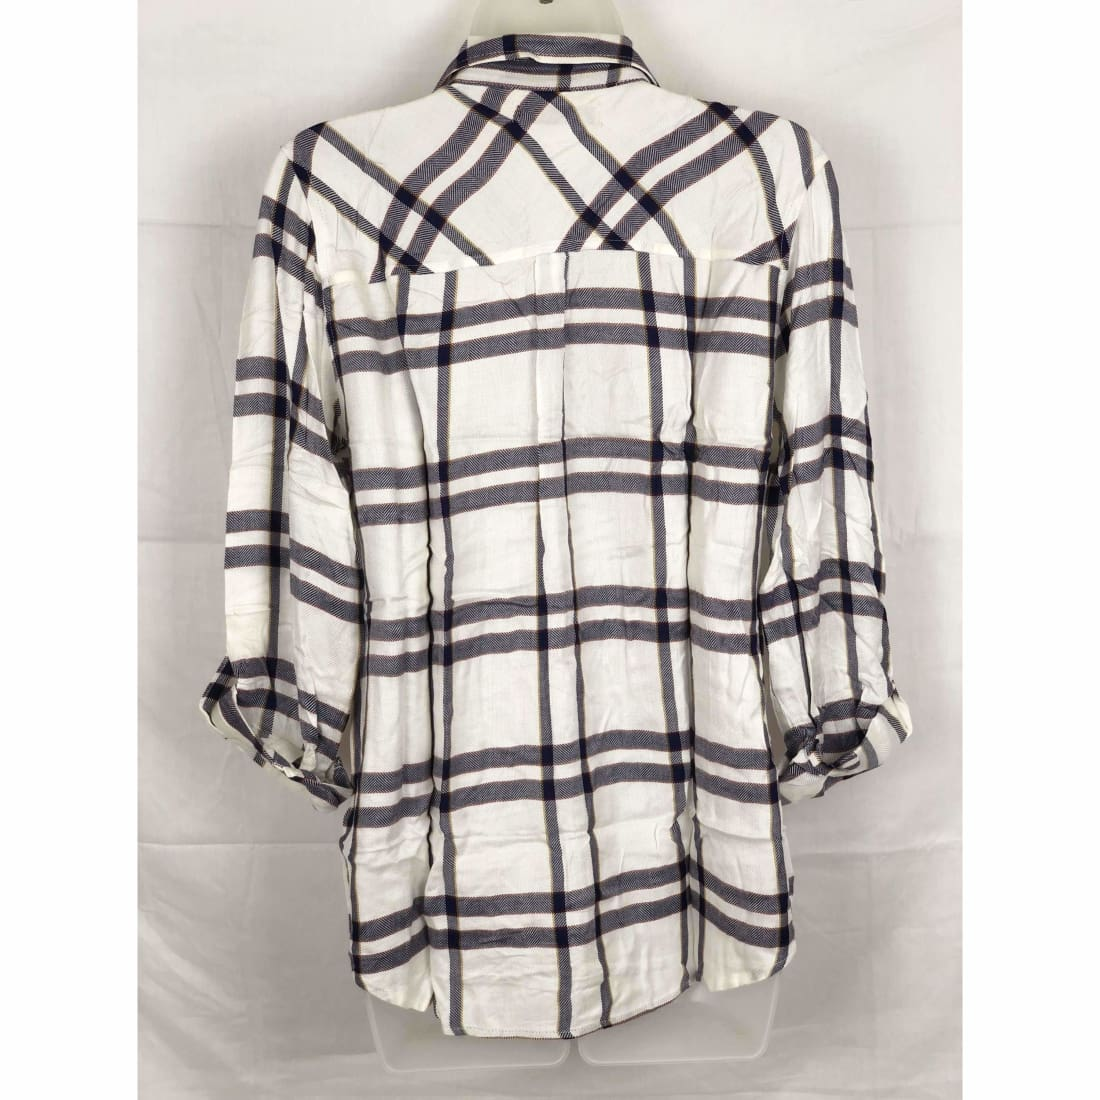 Michael Farrell Womens Button Front Roll Tab Plaid Shirt Variety Tops & Blouses